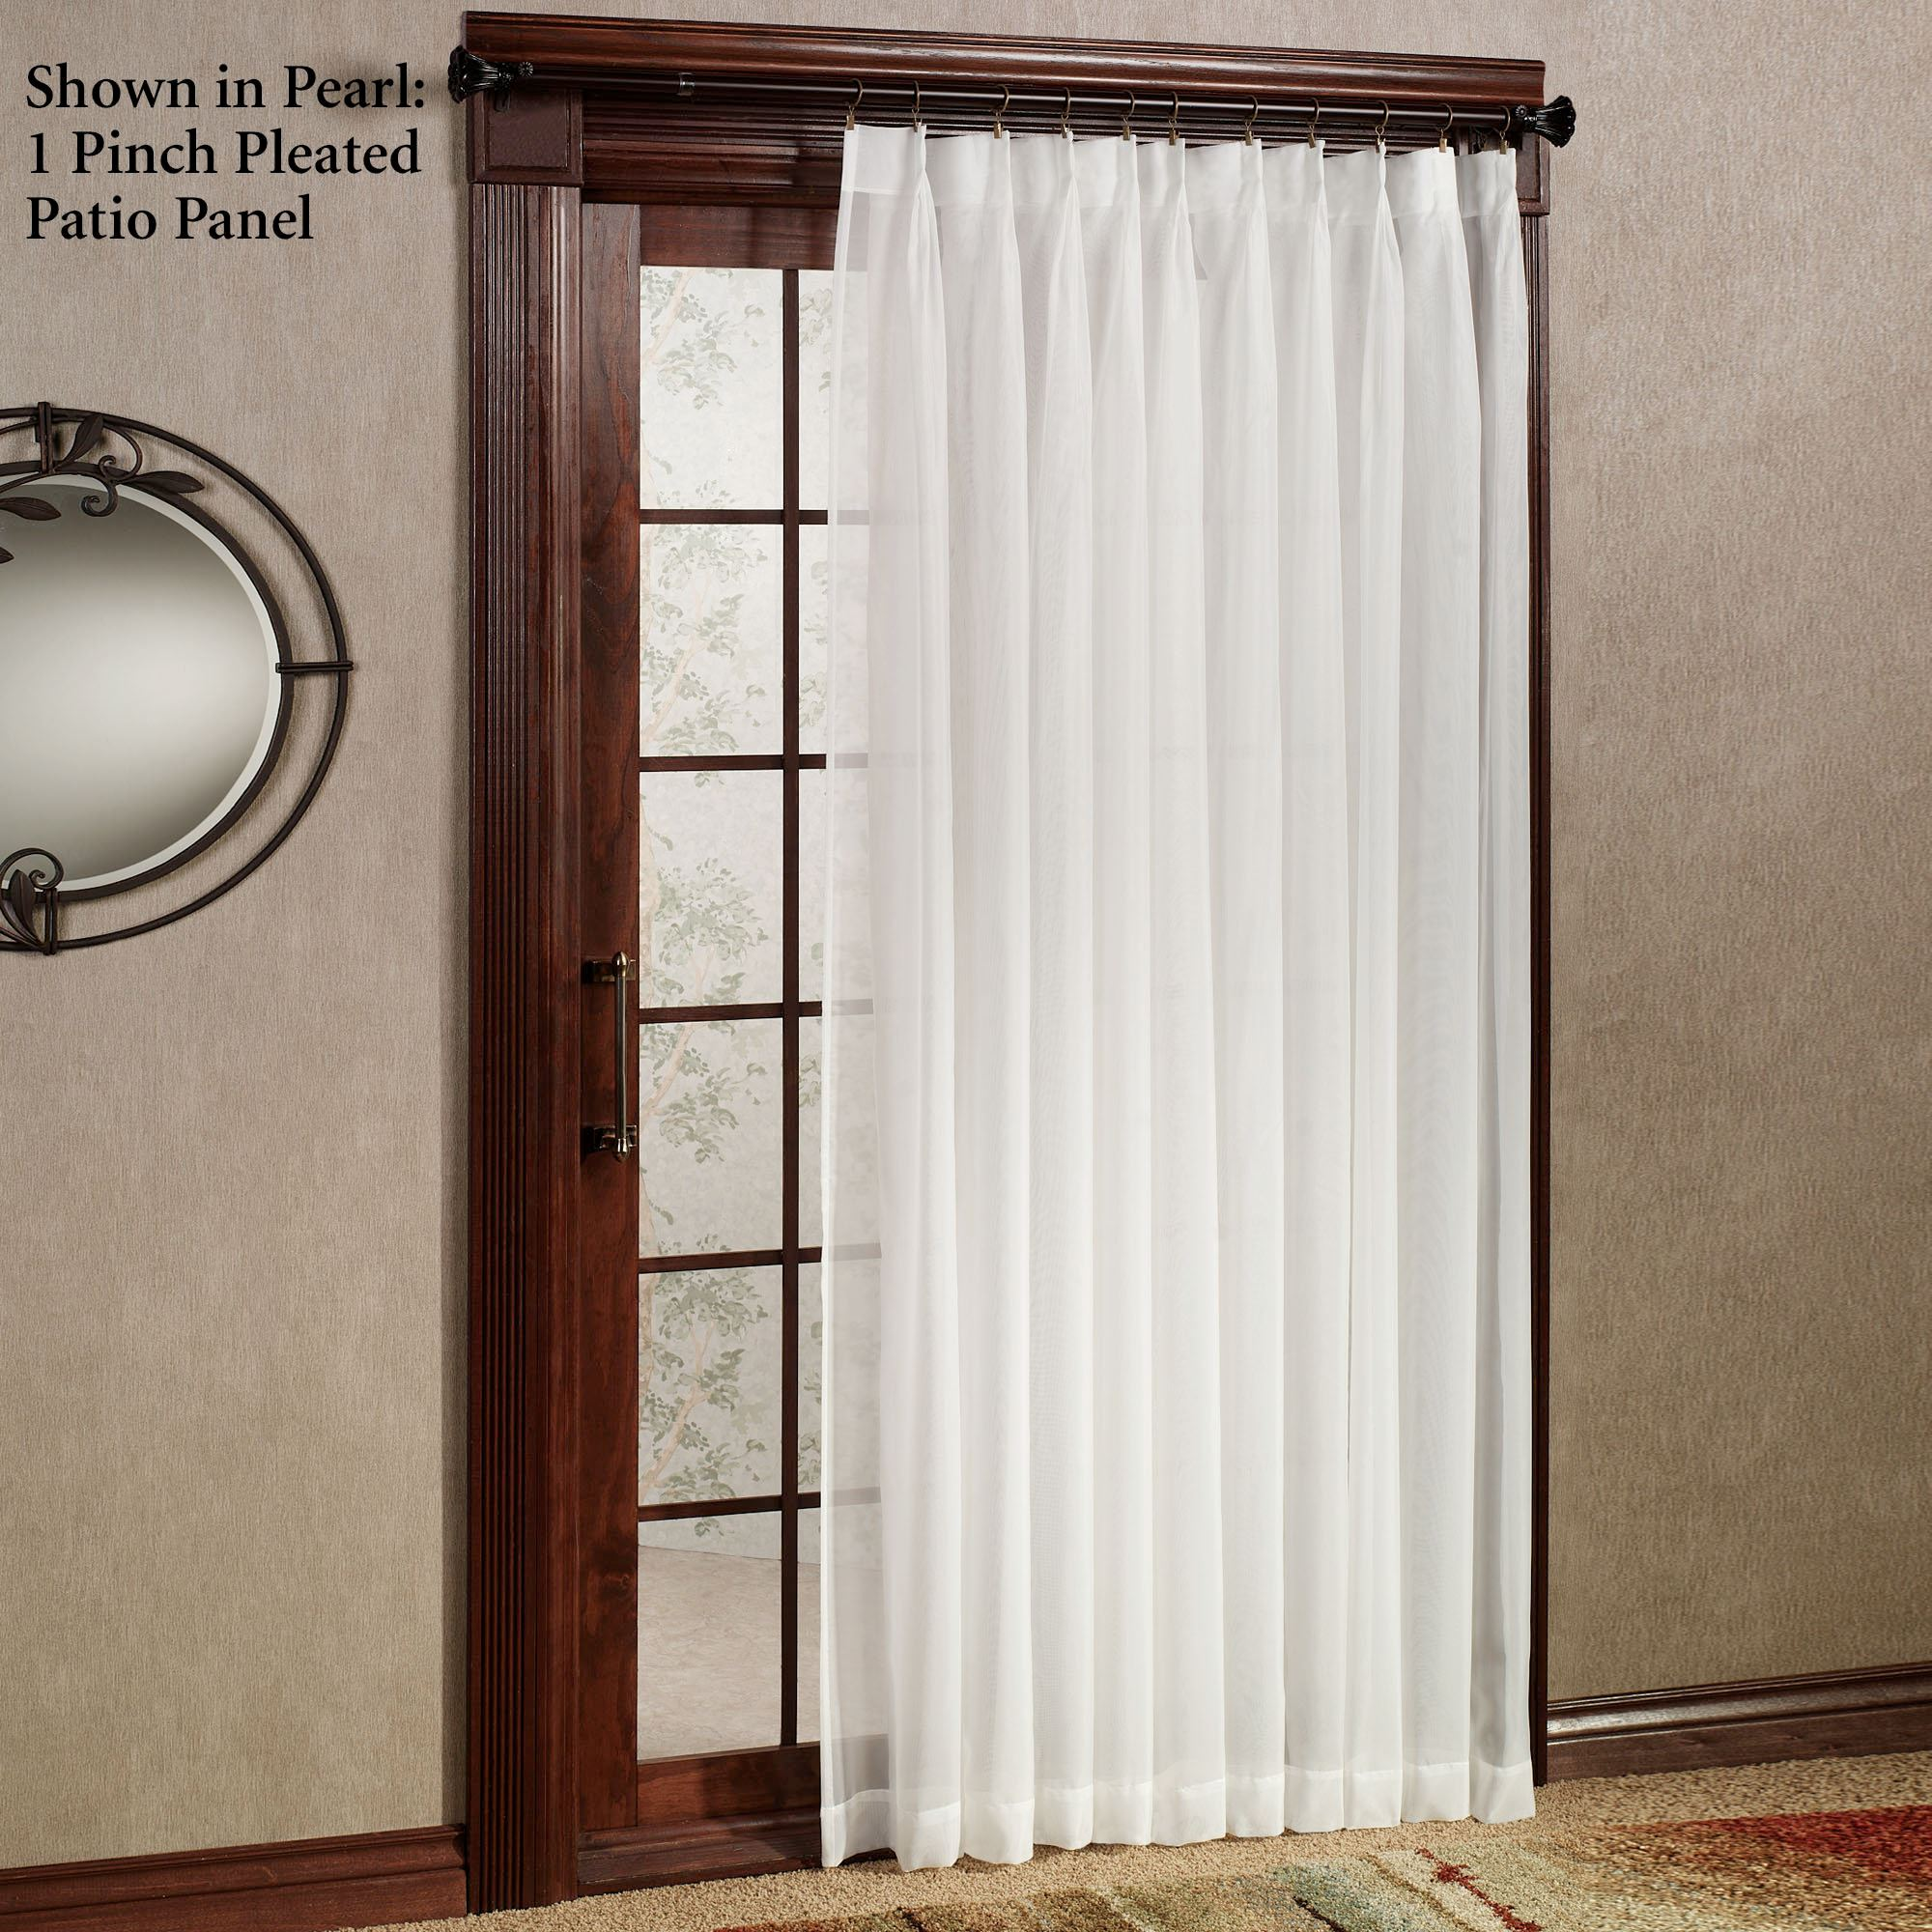 larvotto sheer voile pinch pleated patio panel